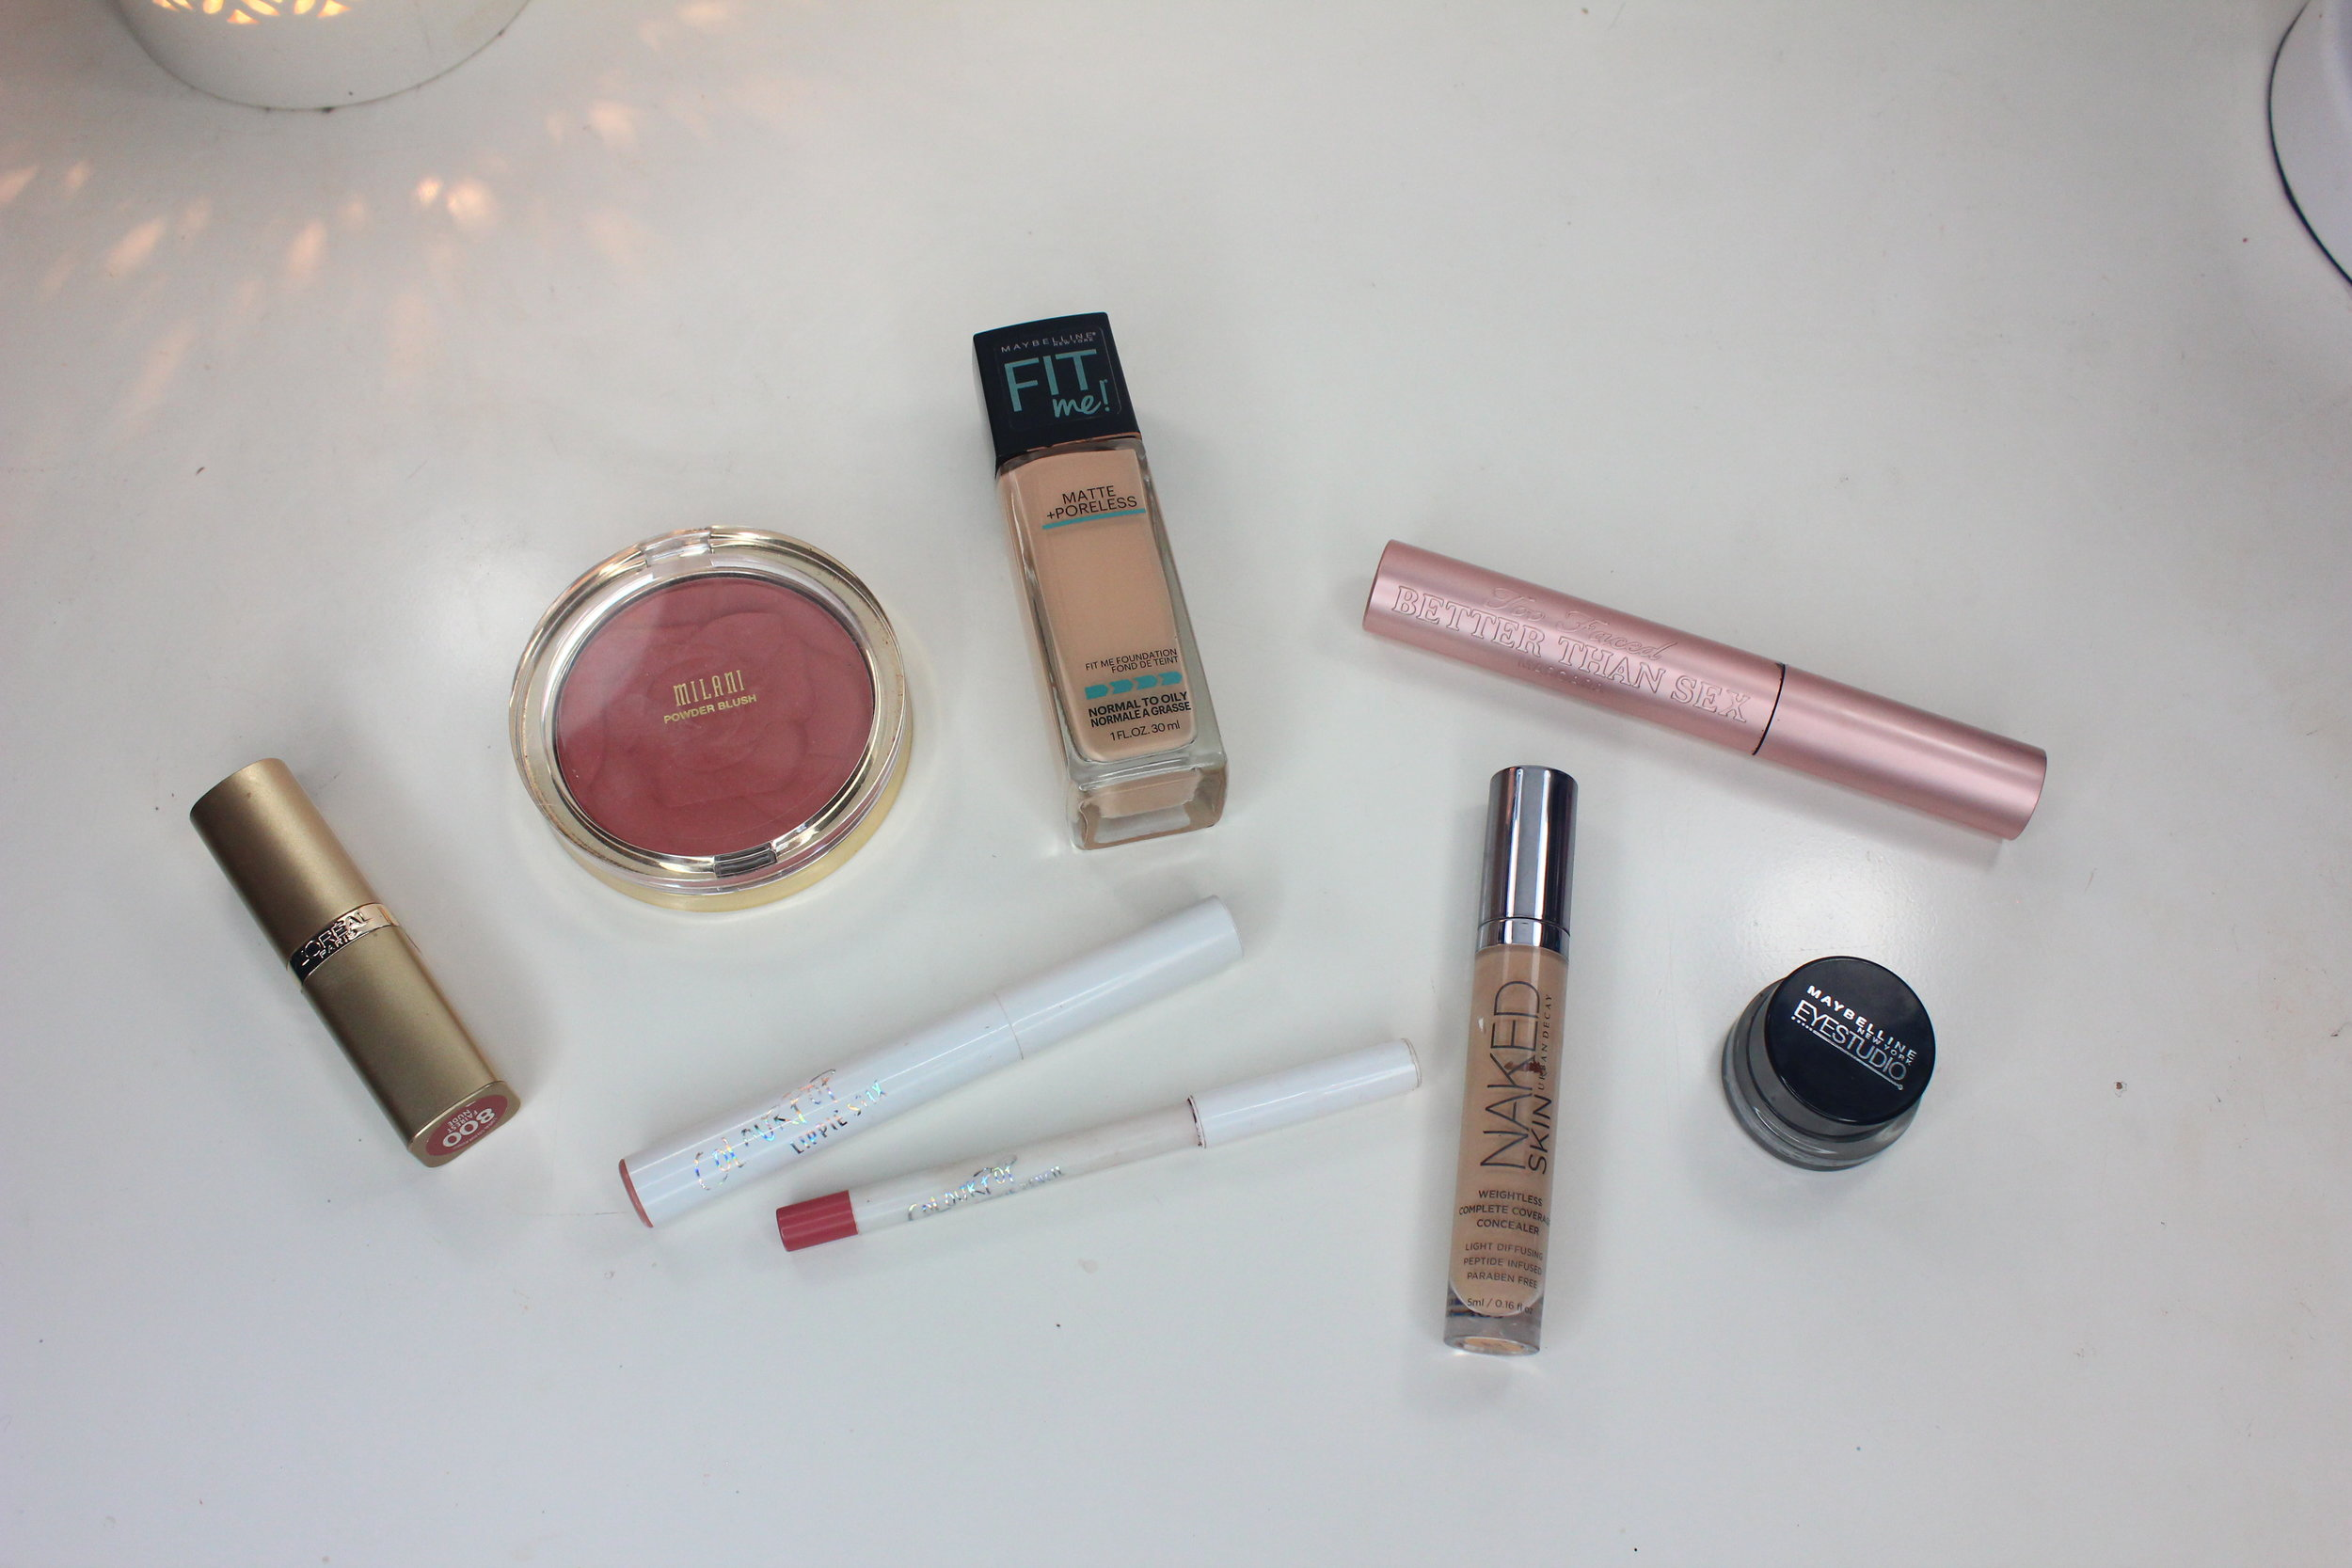 Makeup favorites - maybelline fit me, urban decay concealer, lipstick, colourpop, milani blush